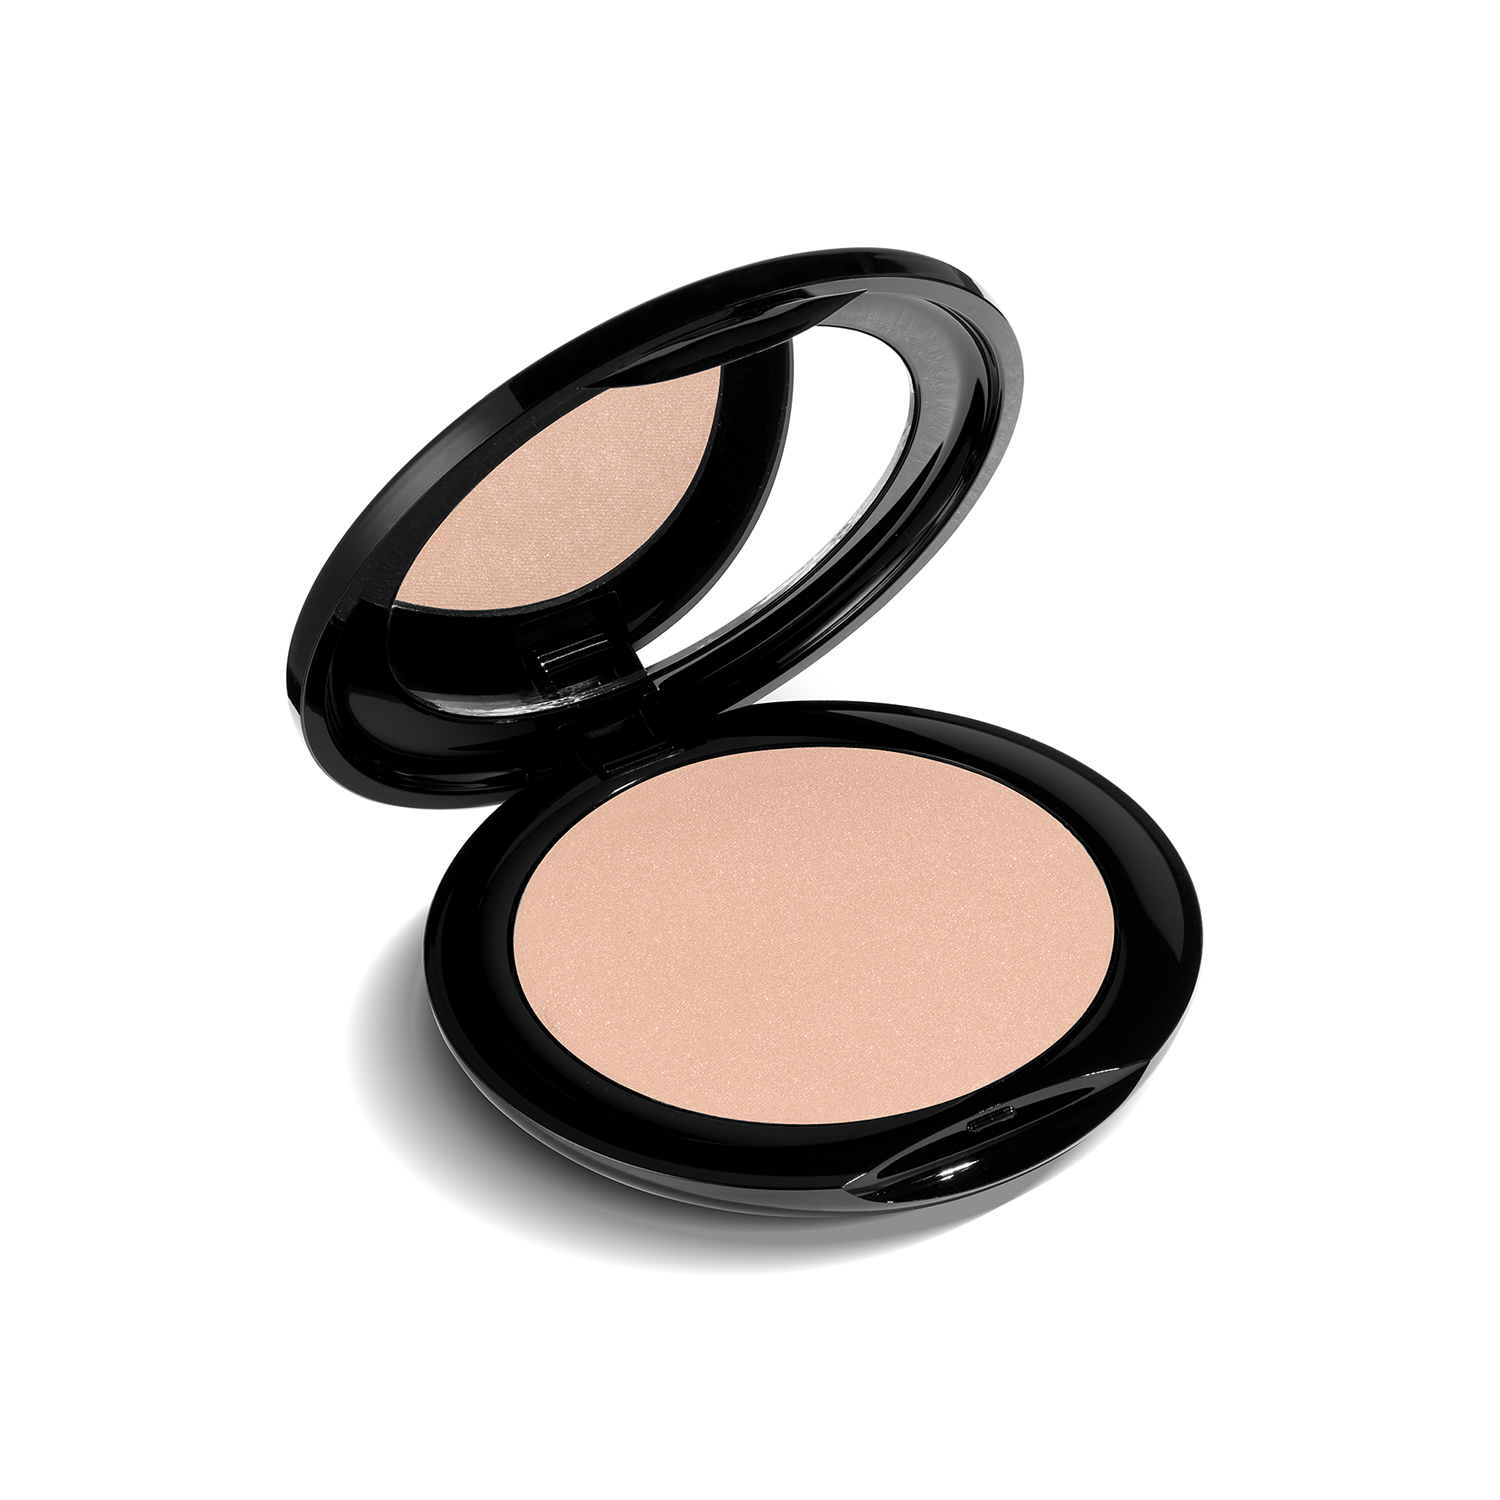 PERFECT FINISH COMPACT FACE POWDER (11 Natural Tan)